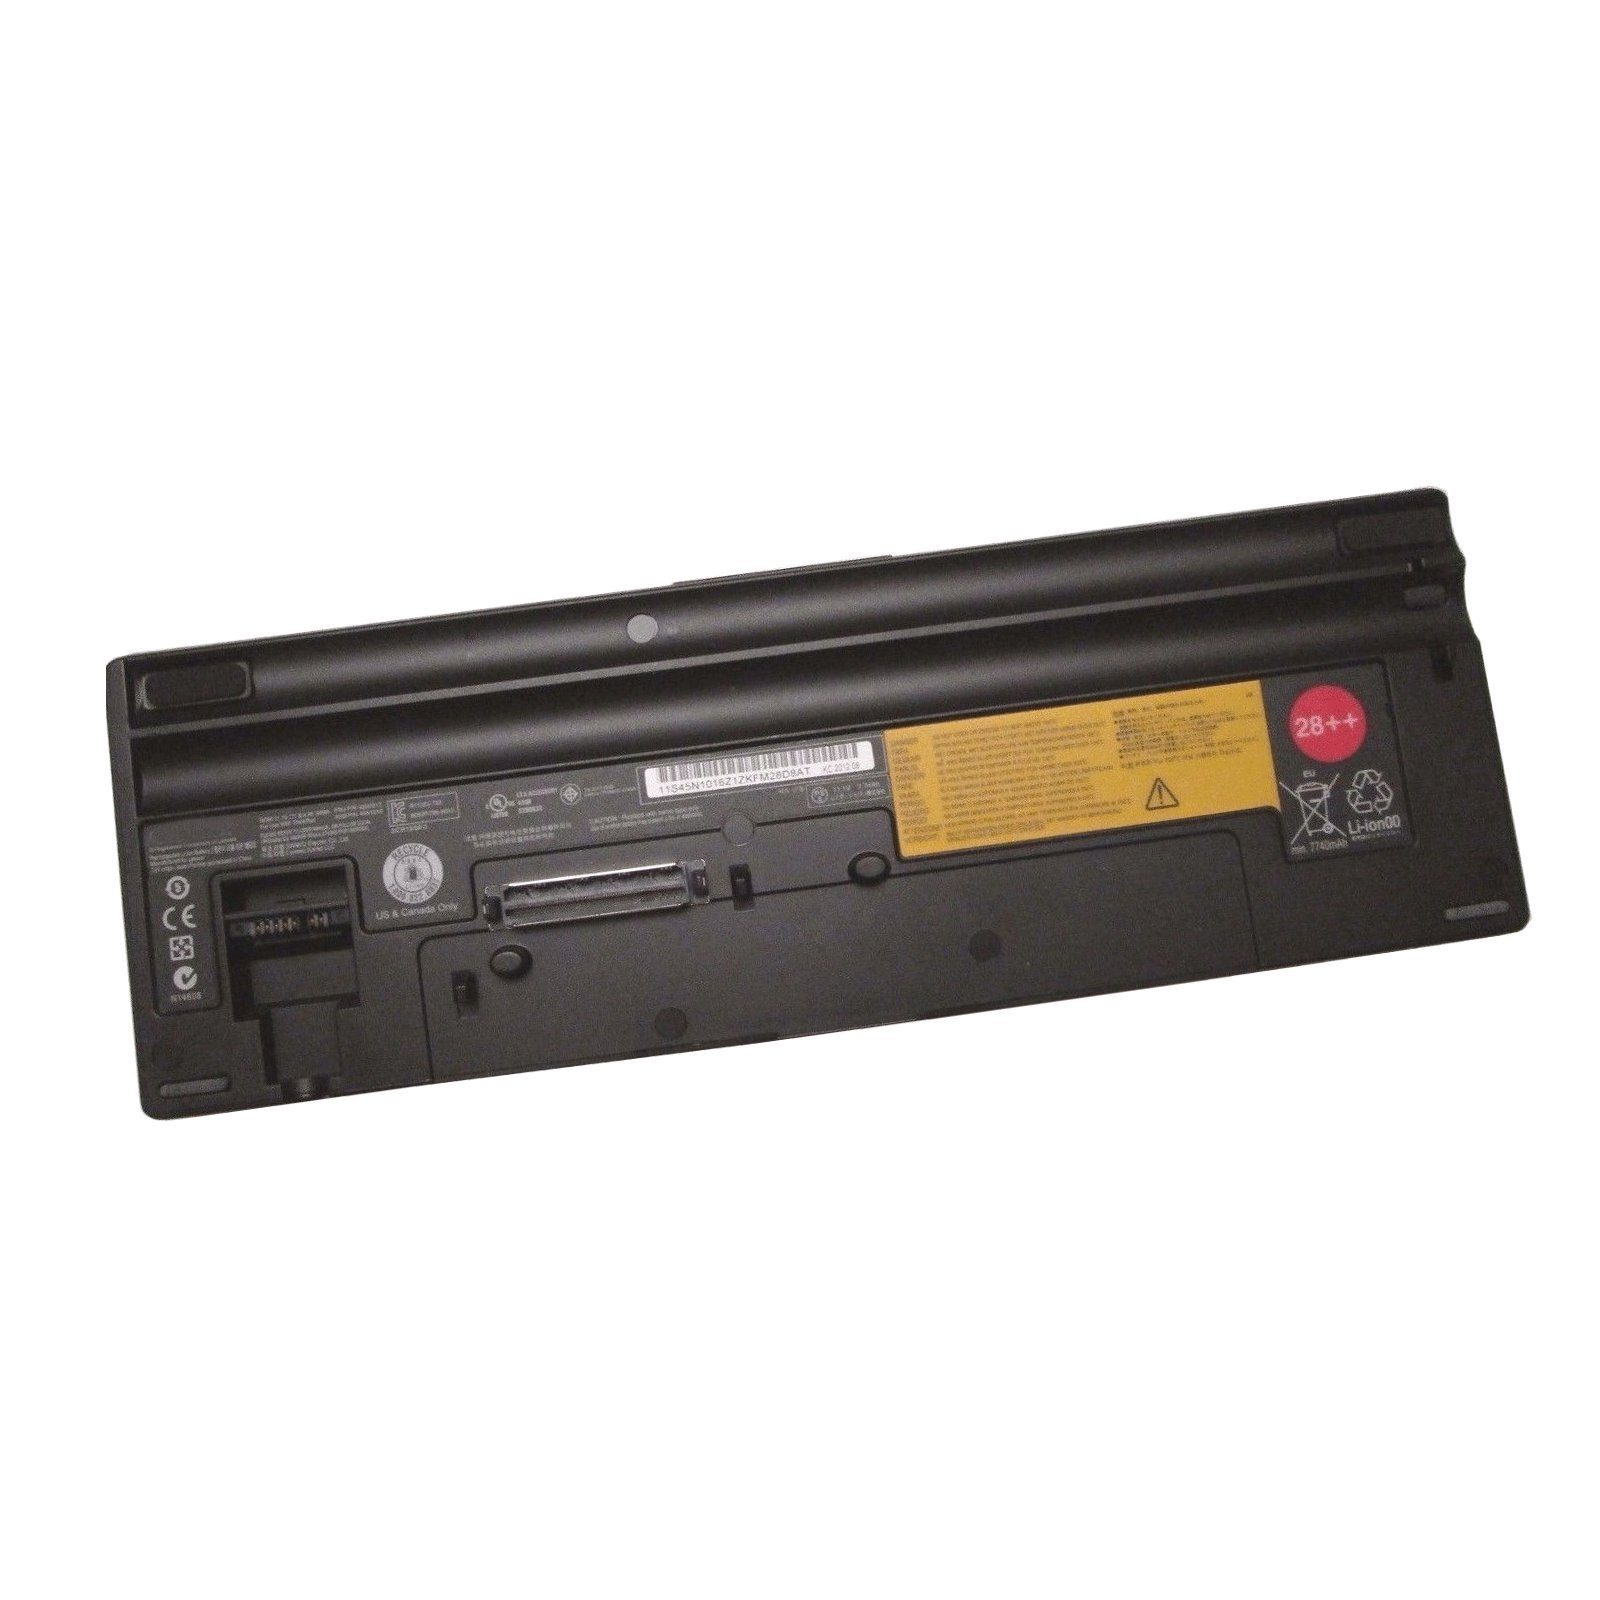 Dentsing 9 Cell Slice 28++ Add -On Battery for ThinkPad Models T410/T510/W510/T420/T520/W520/T430/T530/W530 (0A36304) by Dentsing (Image #1)